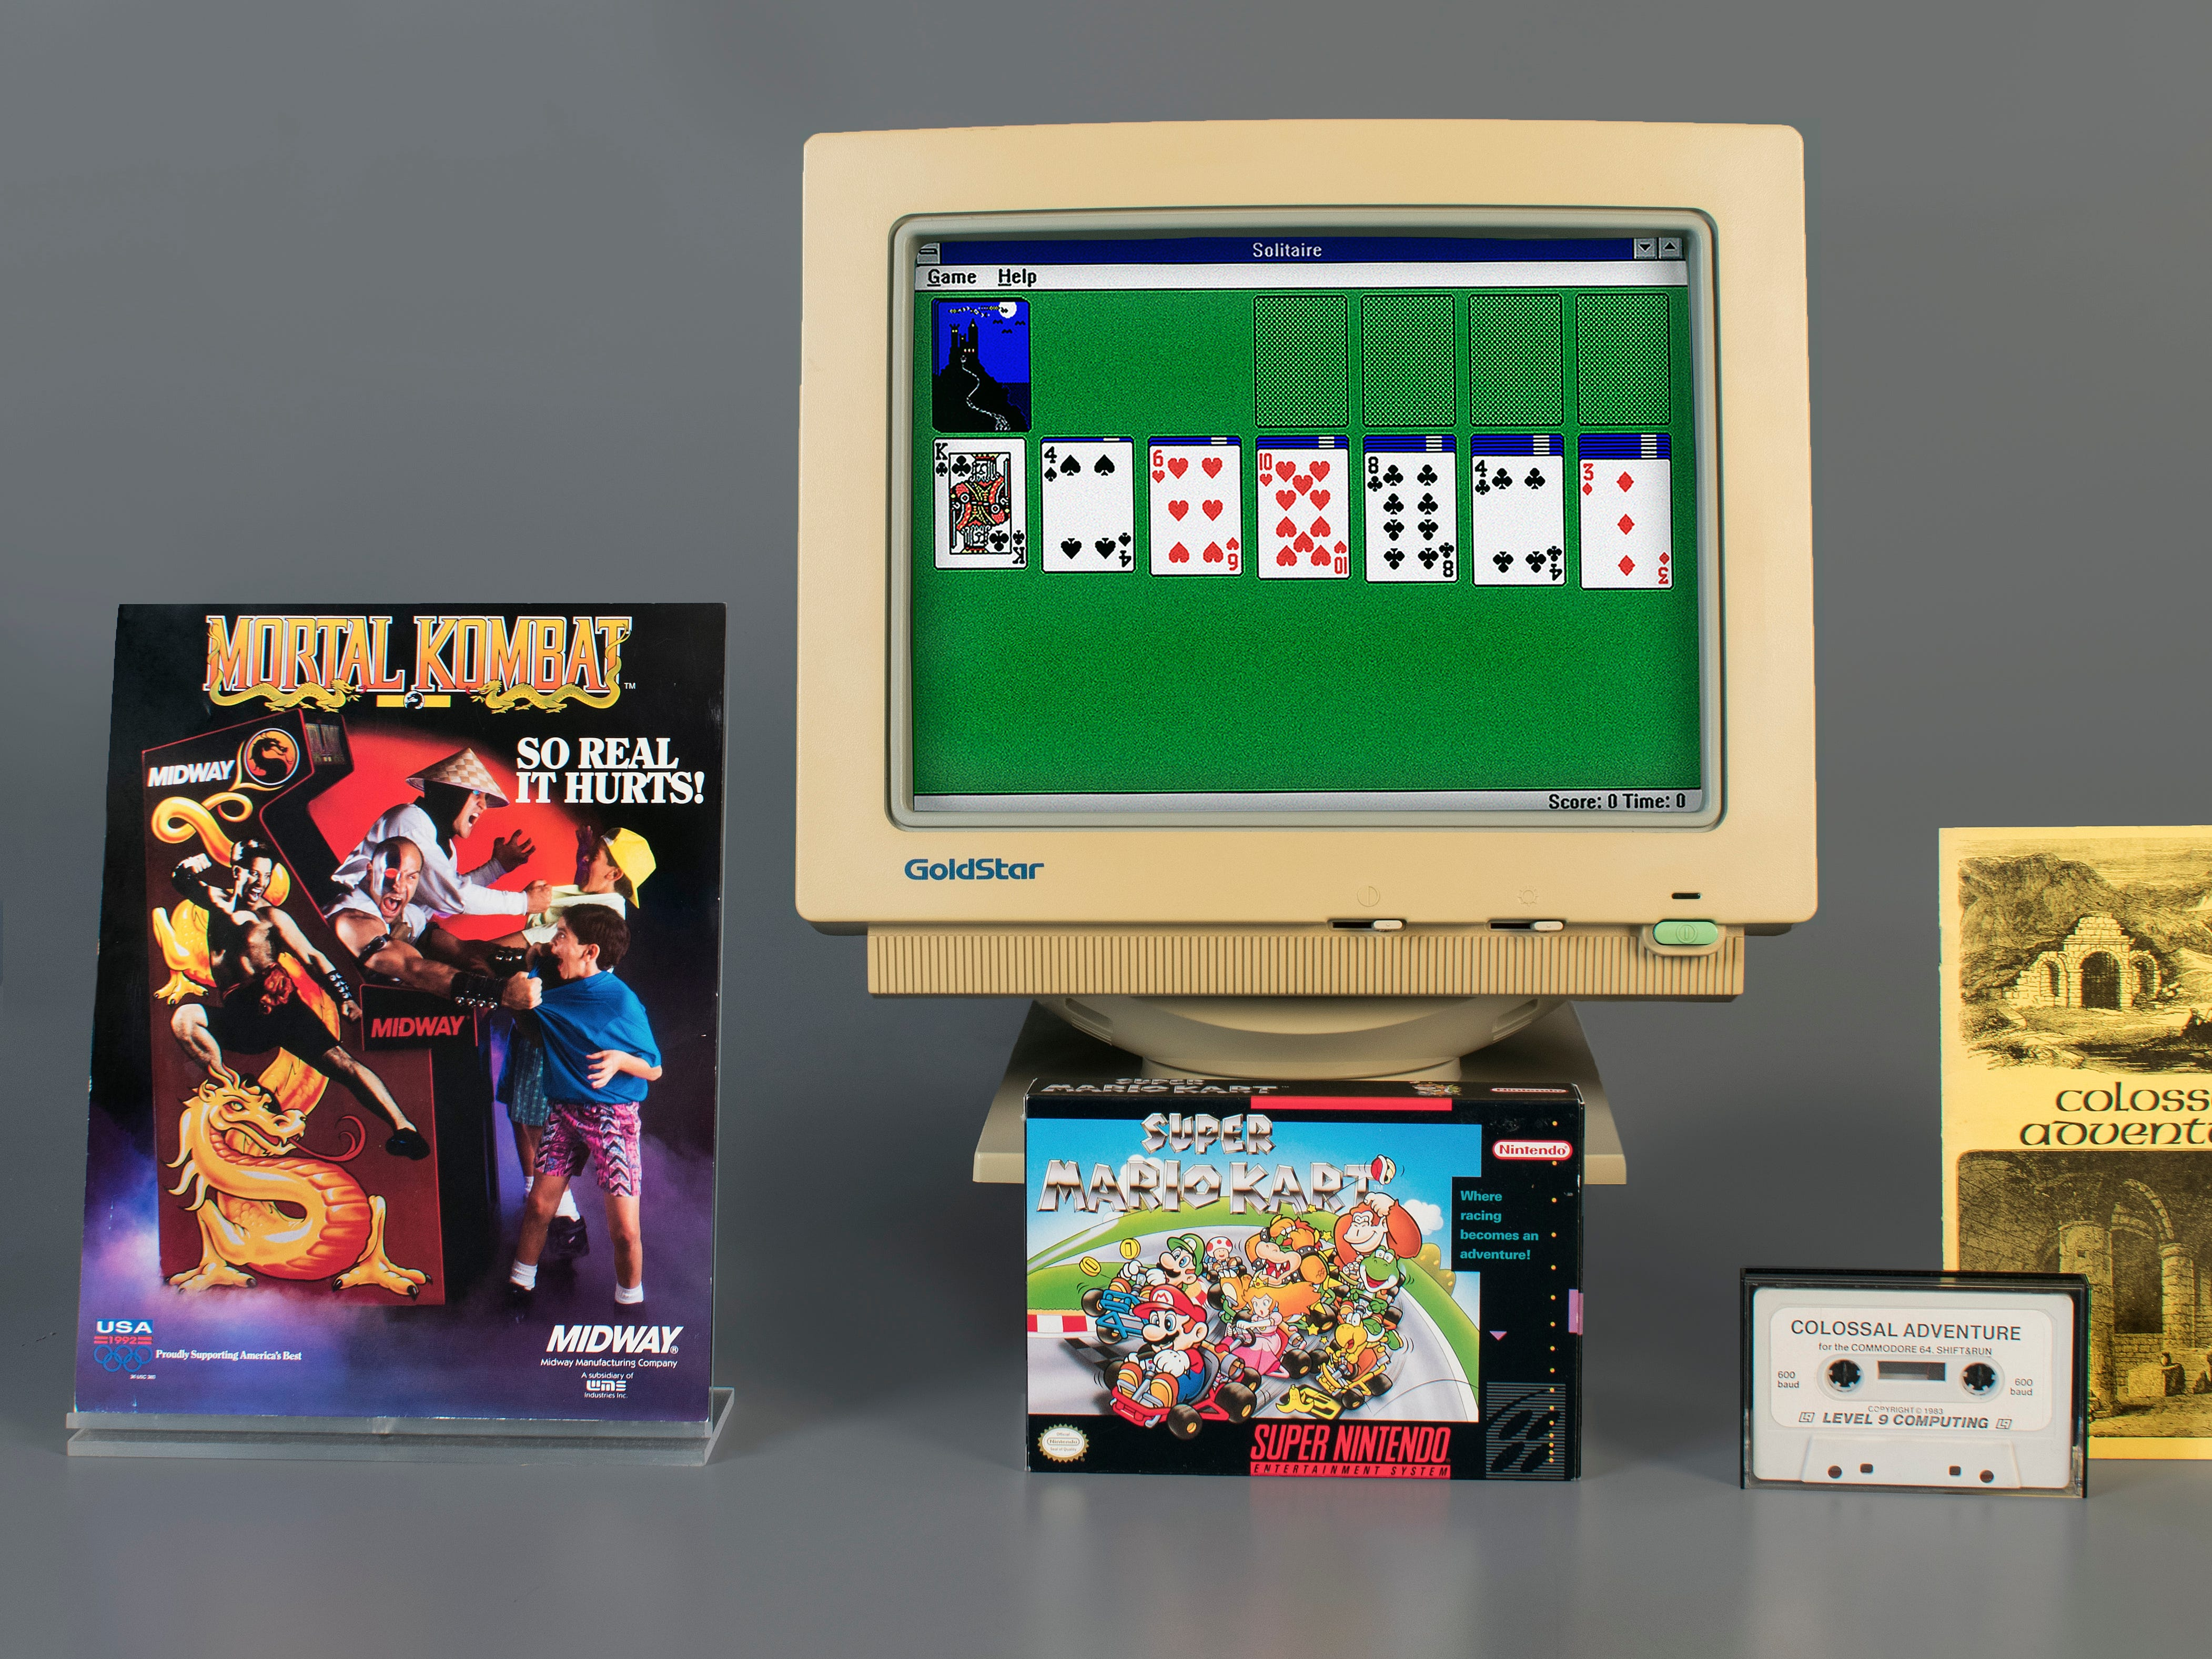 Colossal Cave Adventure, Microsoft Solitaire, Mortal Kombat and Super Mario Kart have been inducted into the World Video Game Hall of Fame in 2019 at The Strong National Museum of Play in Rochester, New York.